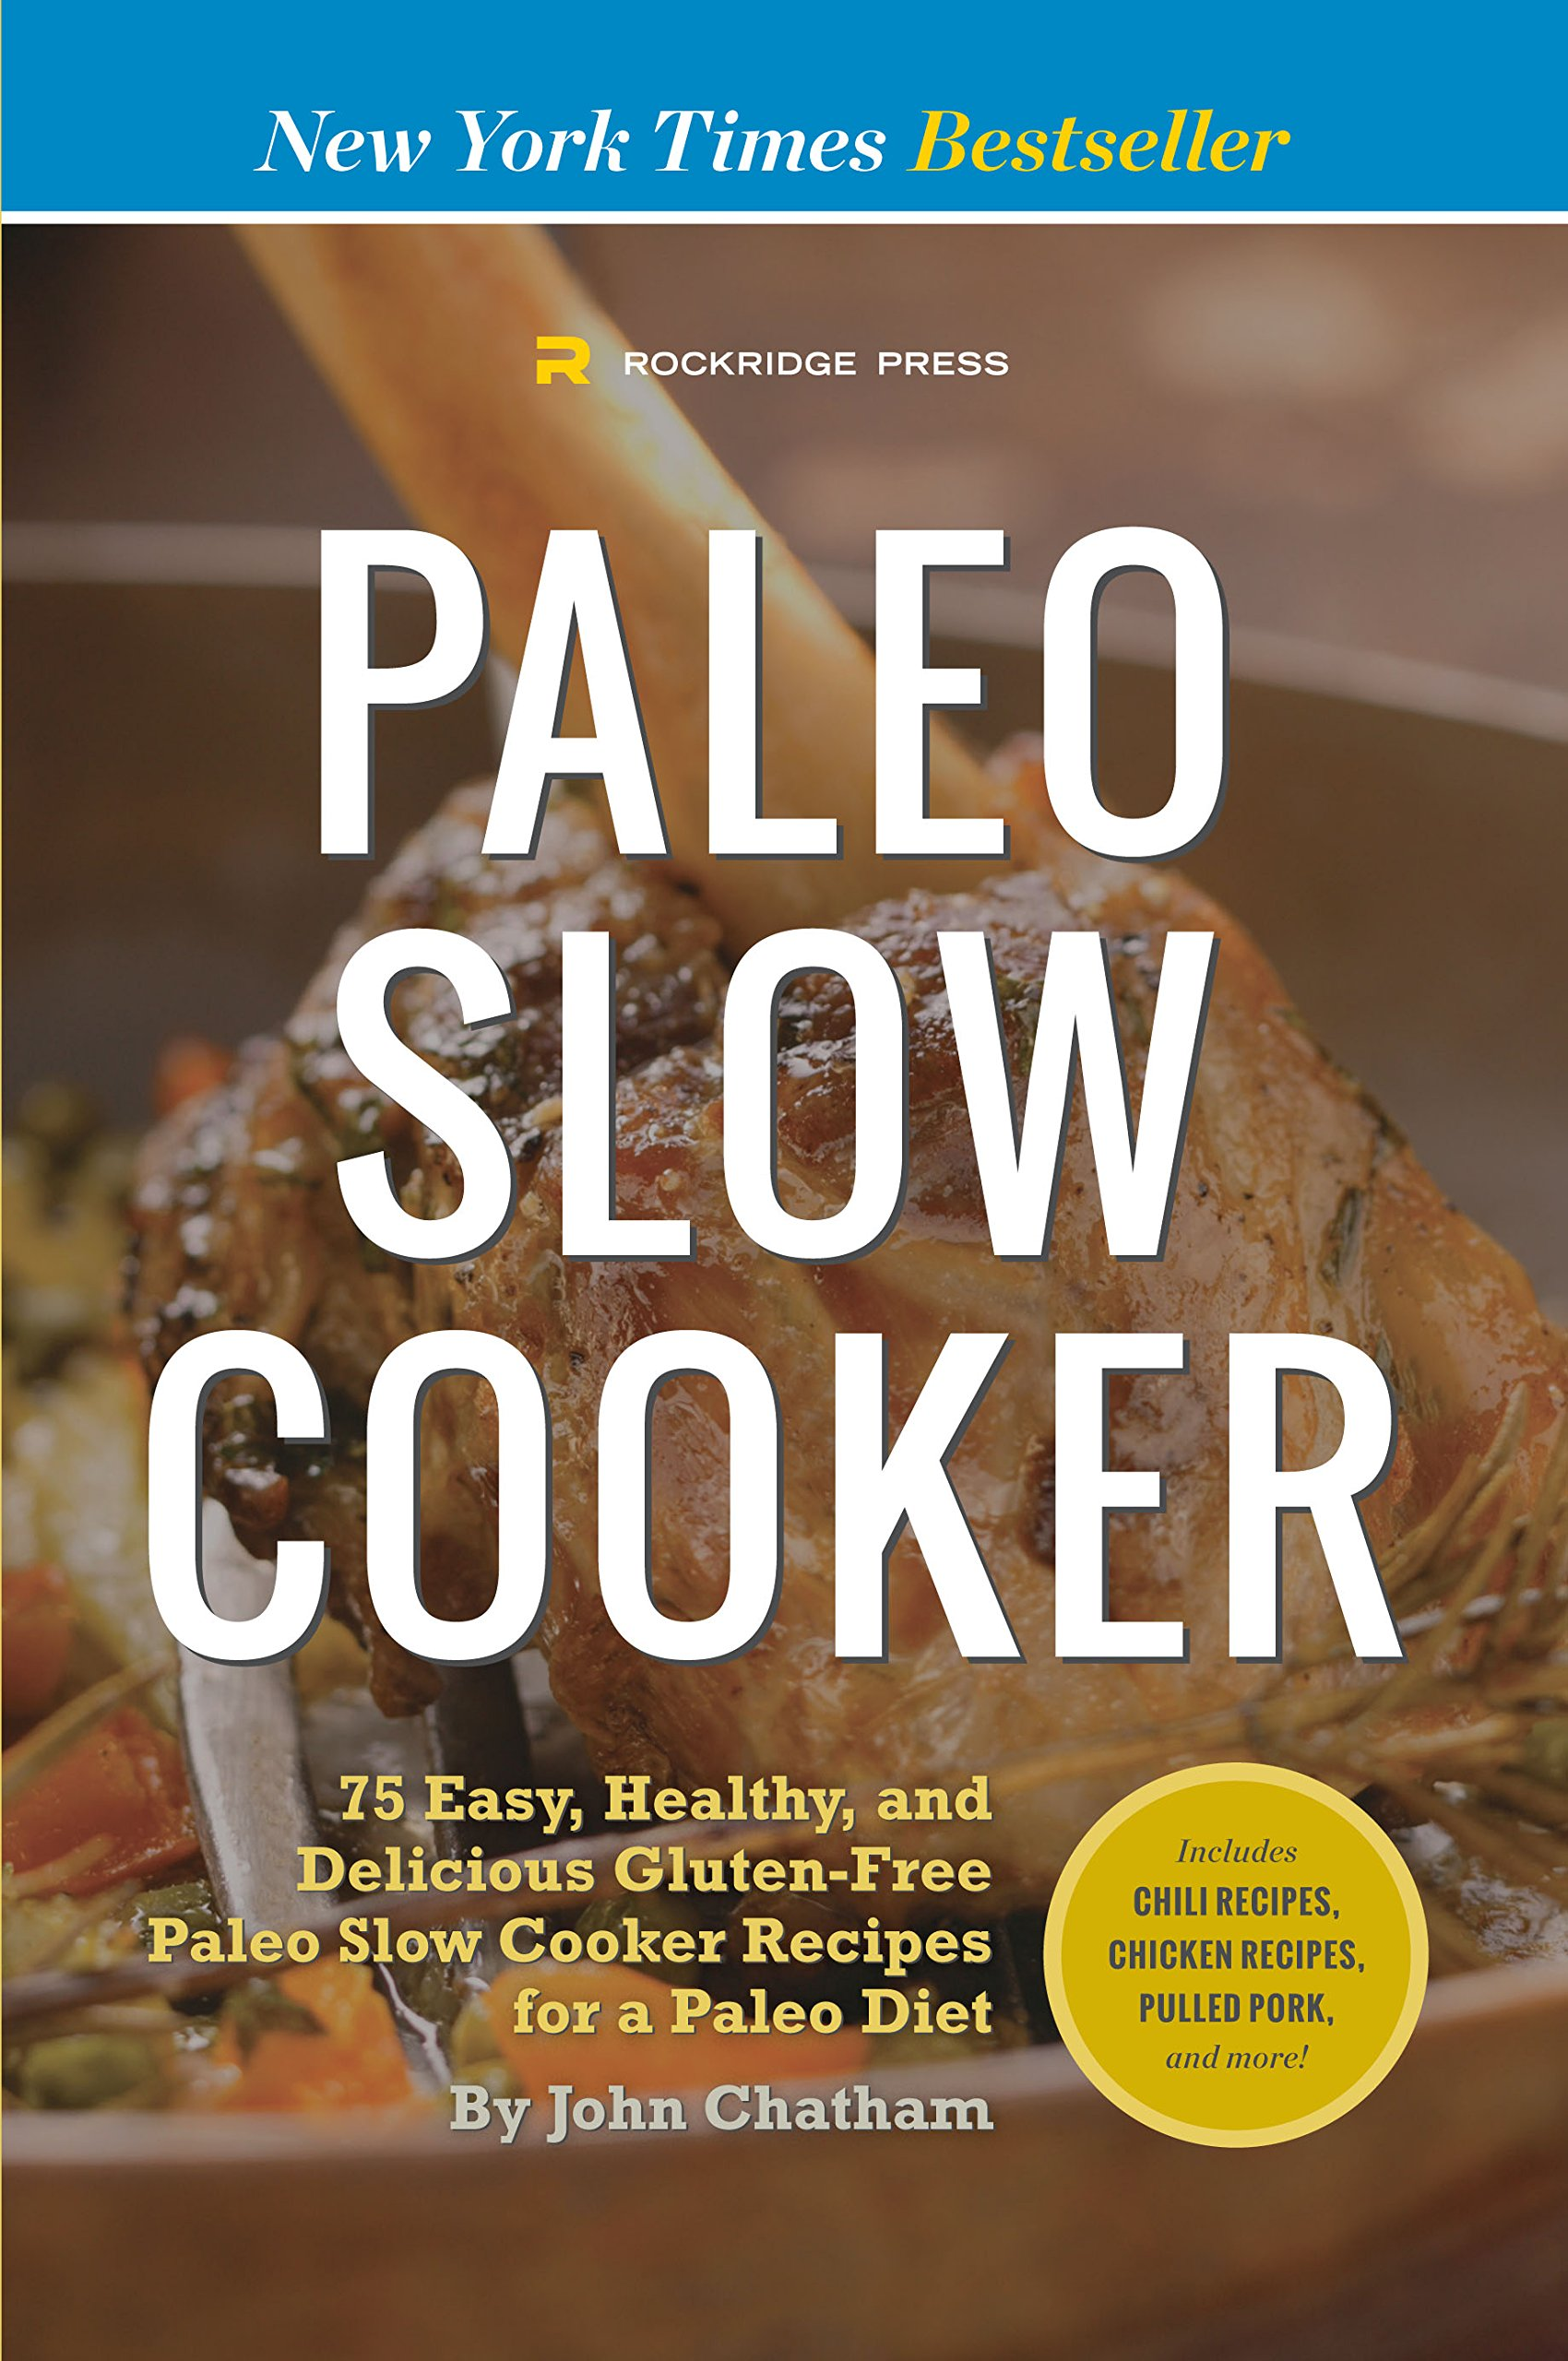 Paleo Slow Cooker: 75 Easy, Healthy, and Delicious Gluten-Free Paleo Slow Cooker Recipes for a Paleo Diet pdf